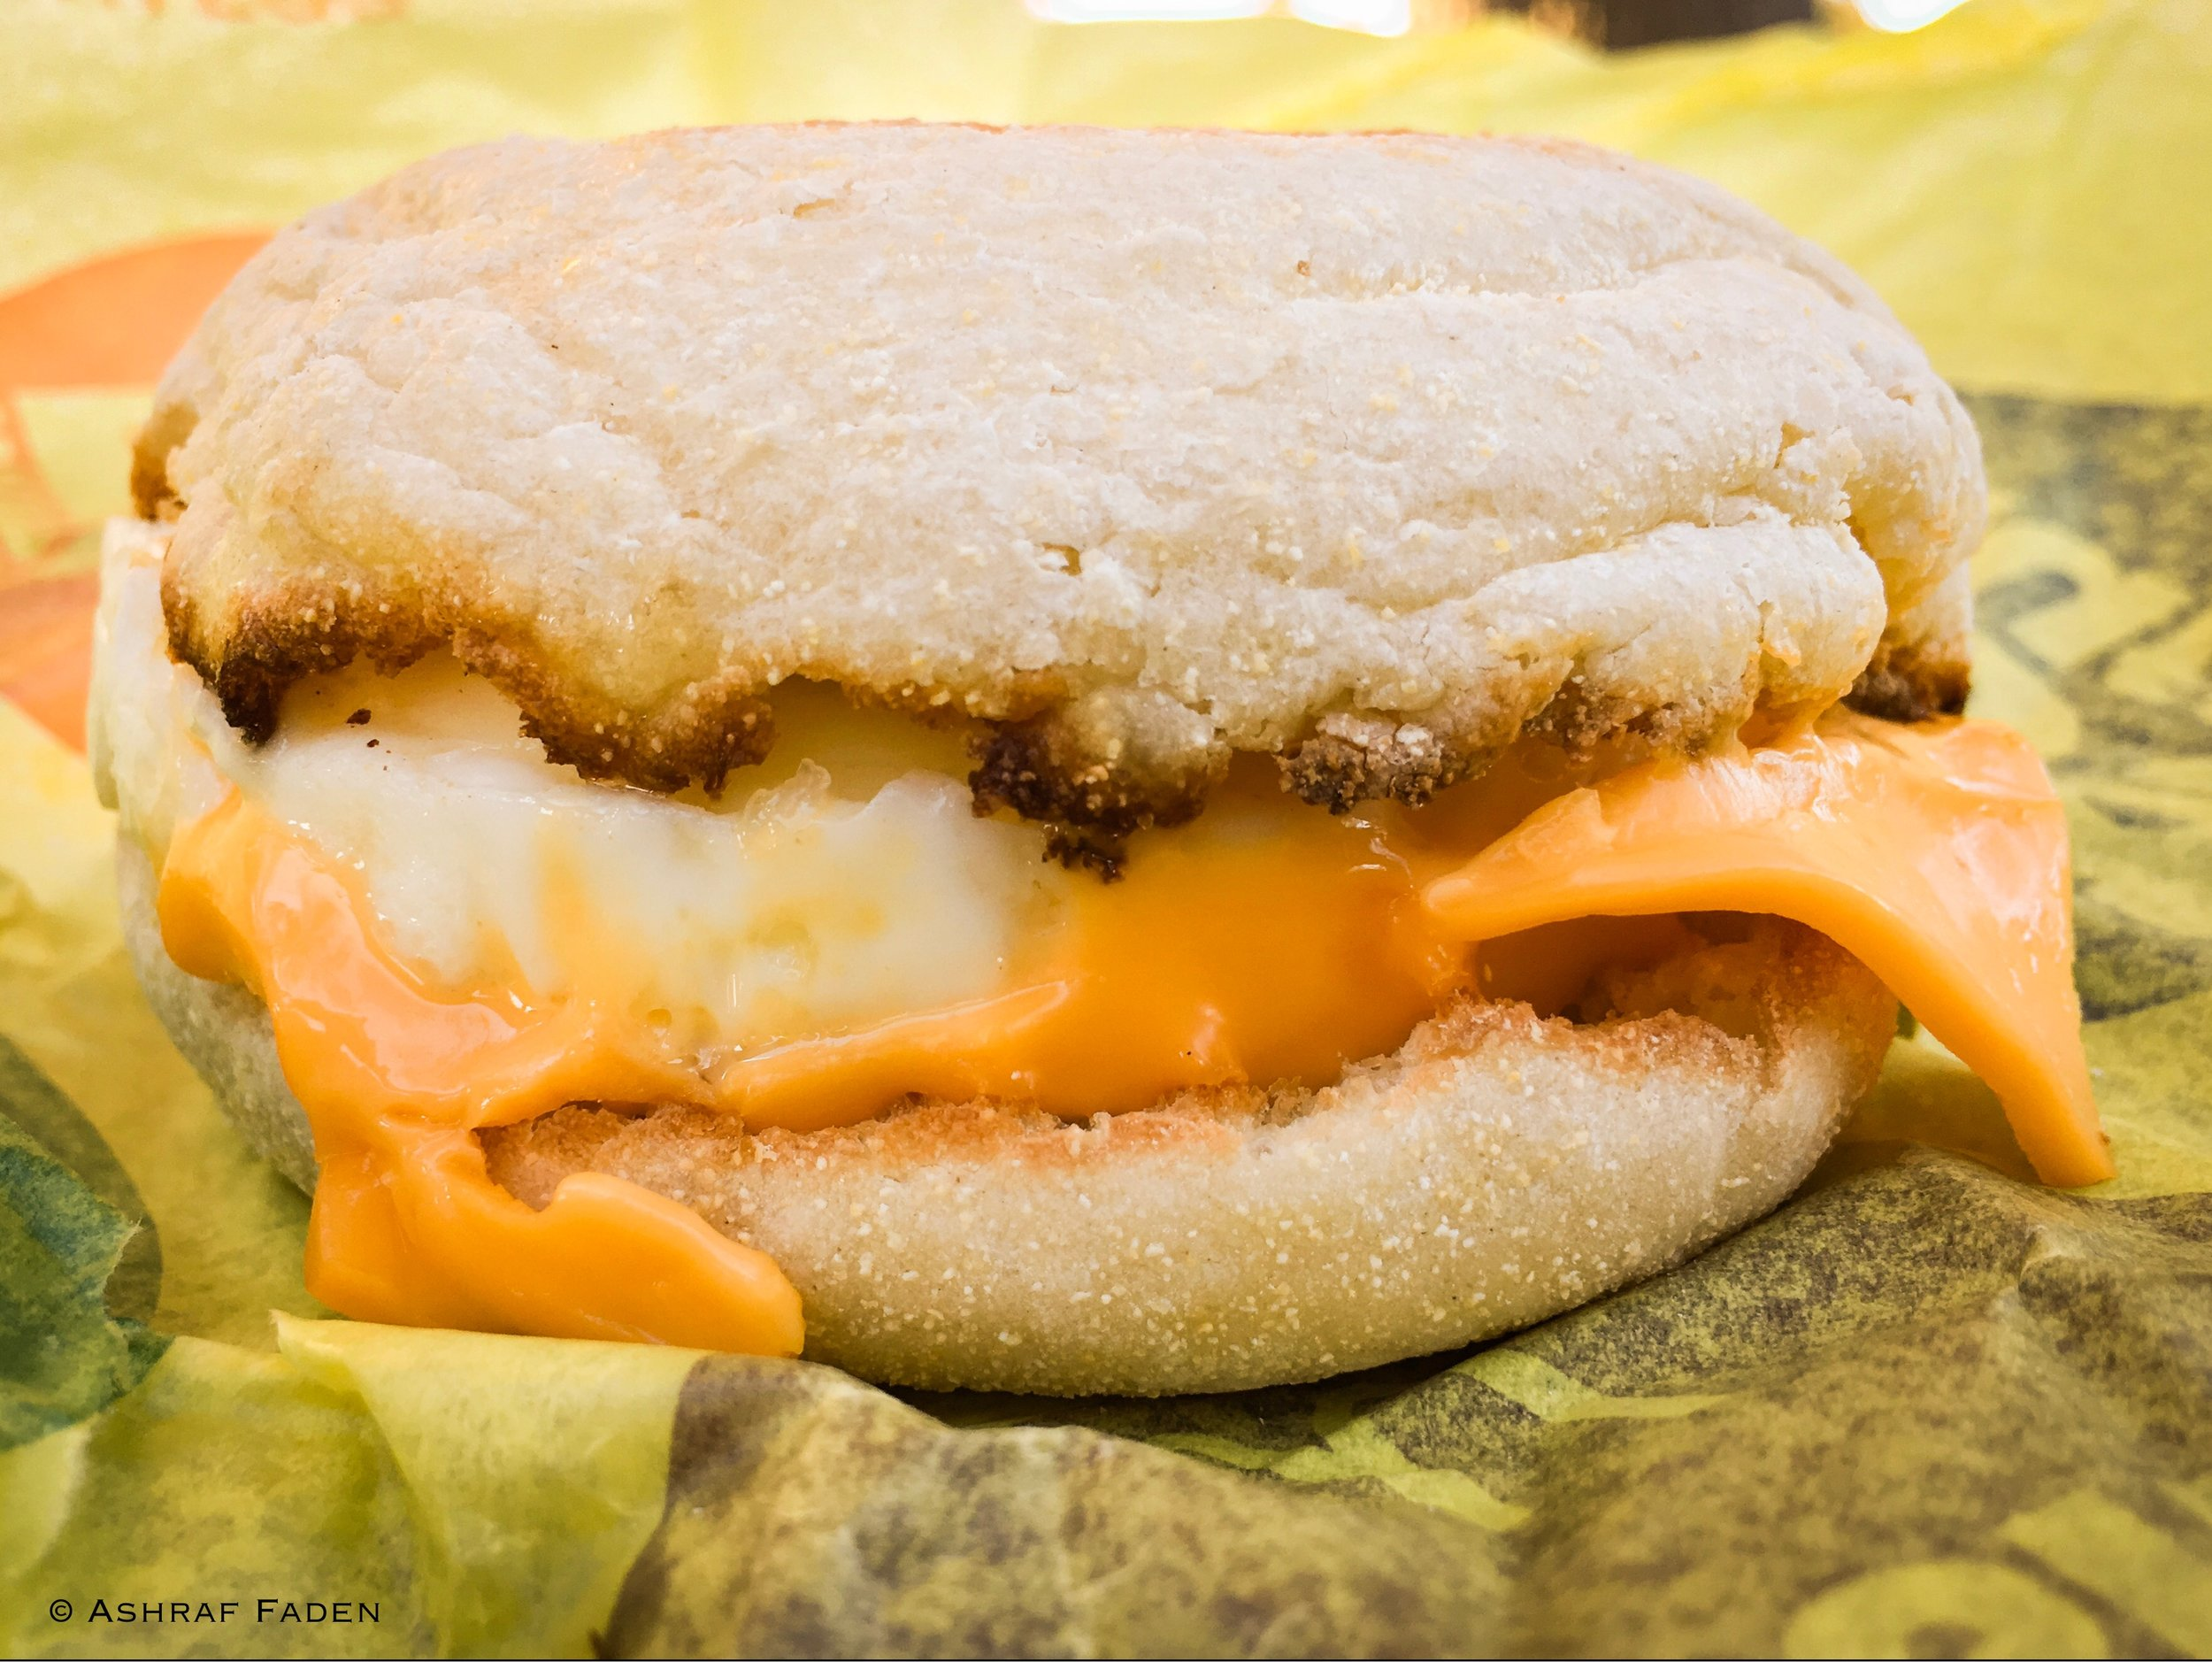 Yes, a warm sandwich can bring me joy even if it's just a small egg mcmuffin from McDonalds. It's something we usually take for granted. Can you imagine how many people can't afford a small warm sandwich on the world? Do you know some people can't even eat or bite and rather get fed through tubes? Just a thought!